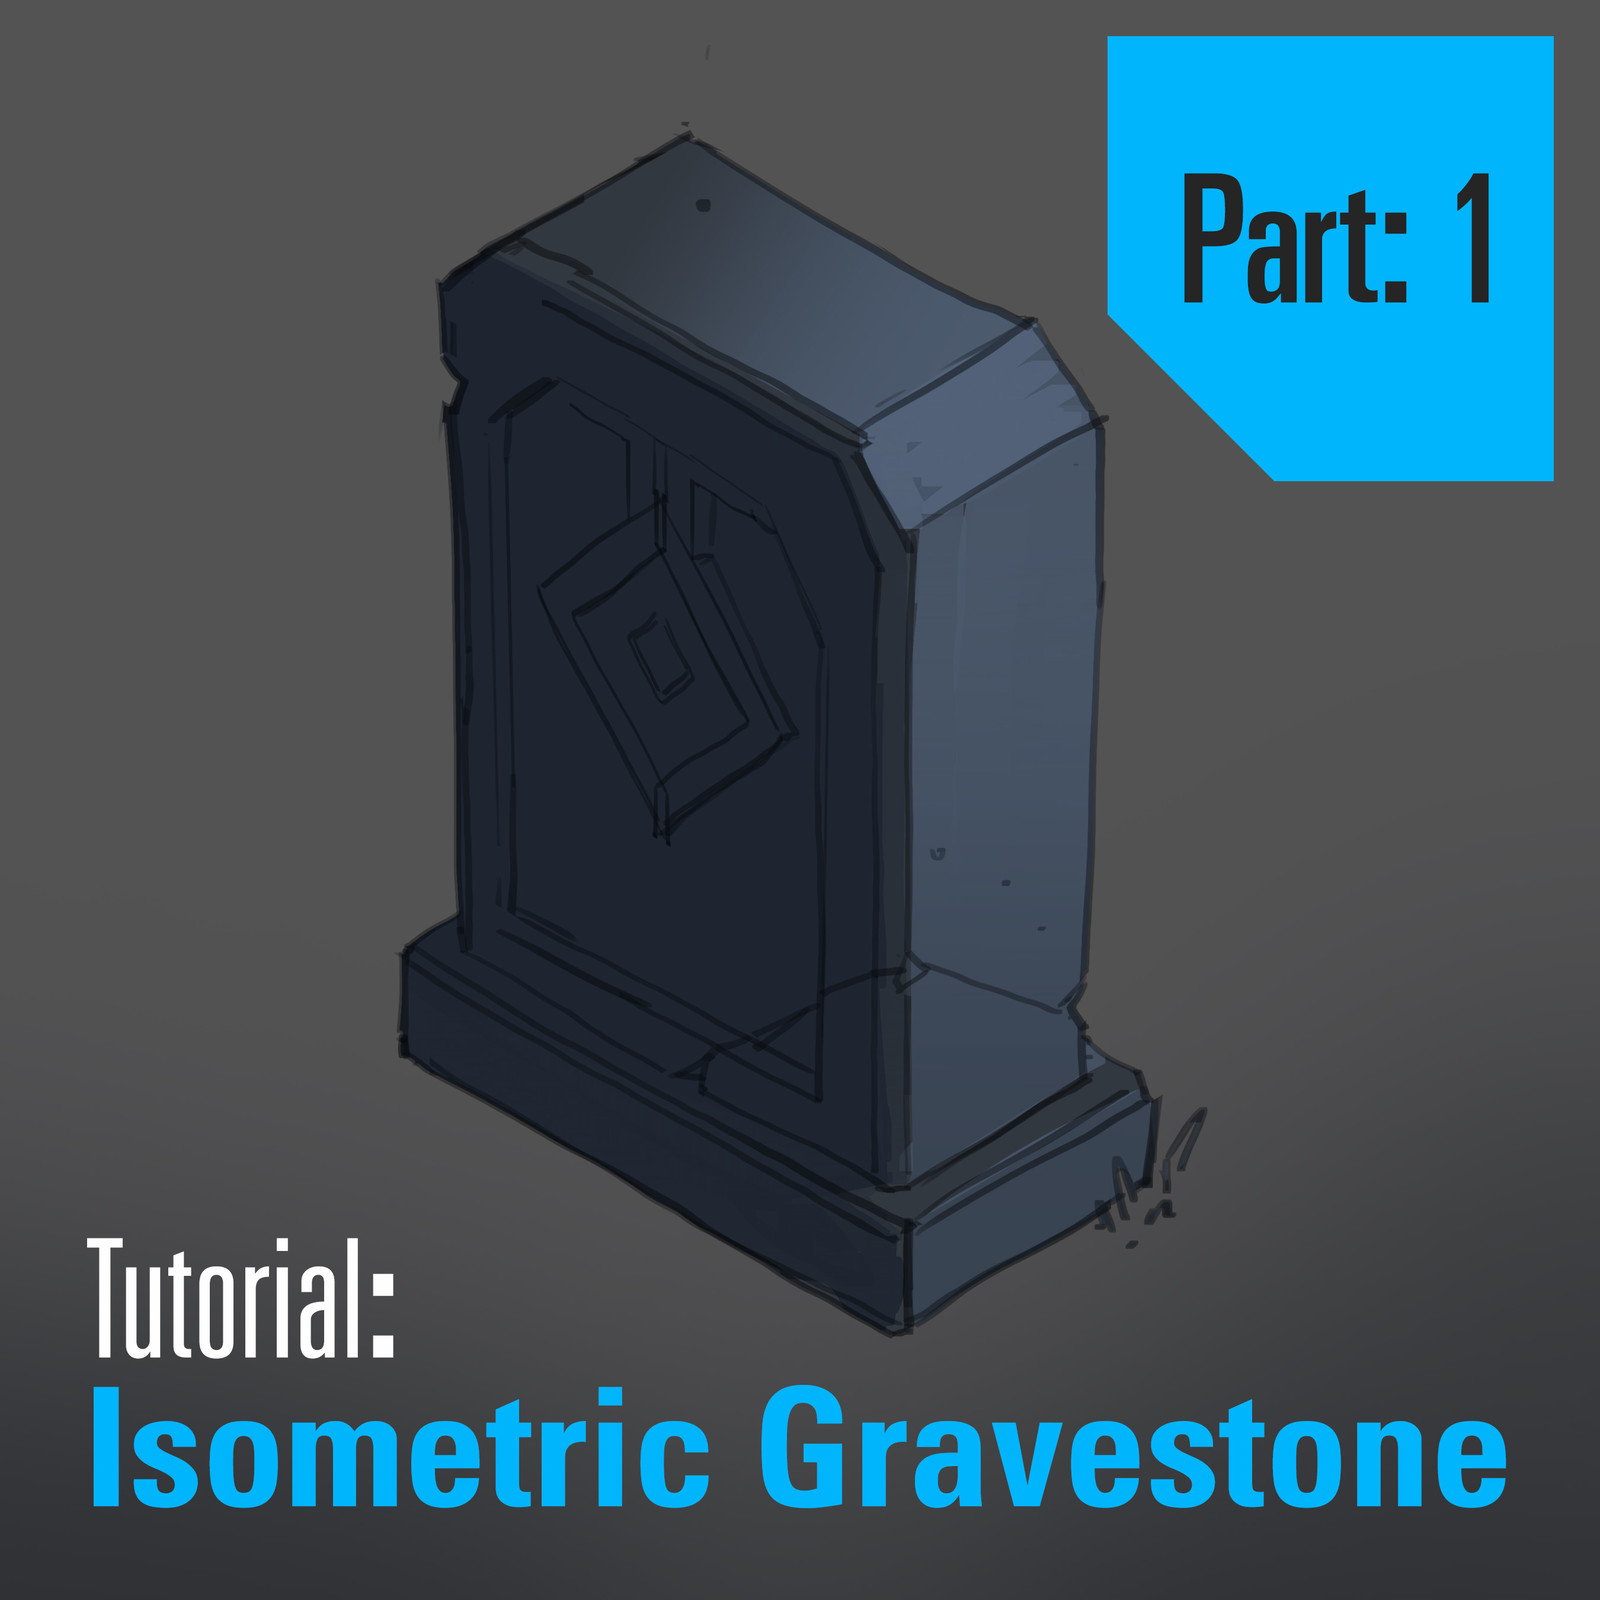 Tutorial: Isometric Gravestone